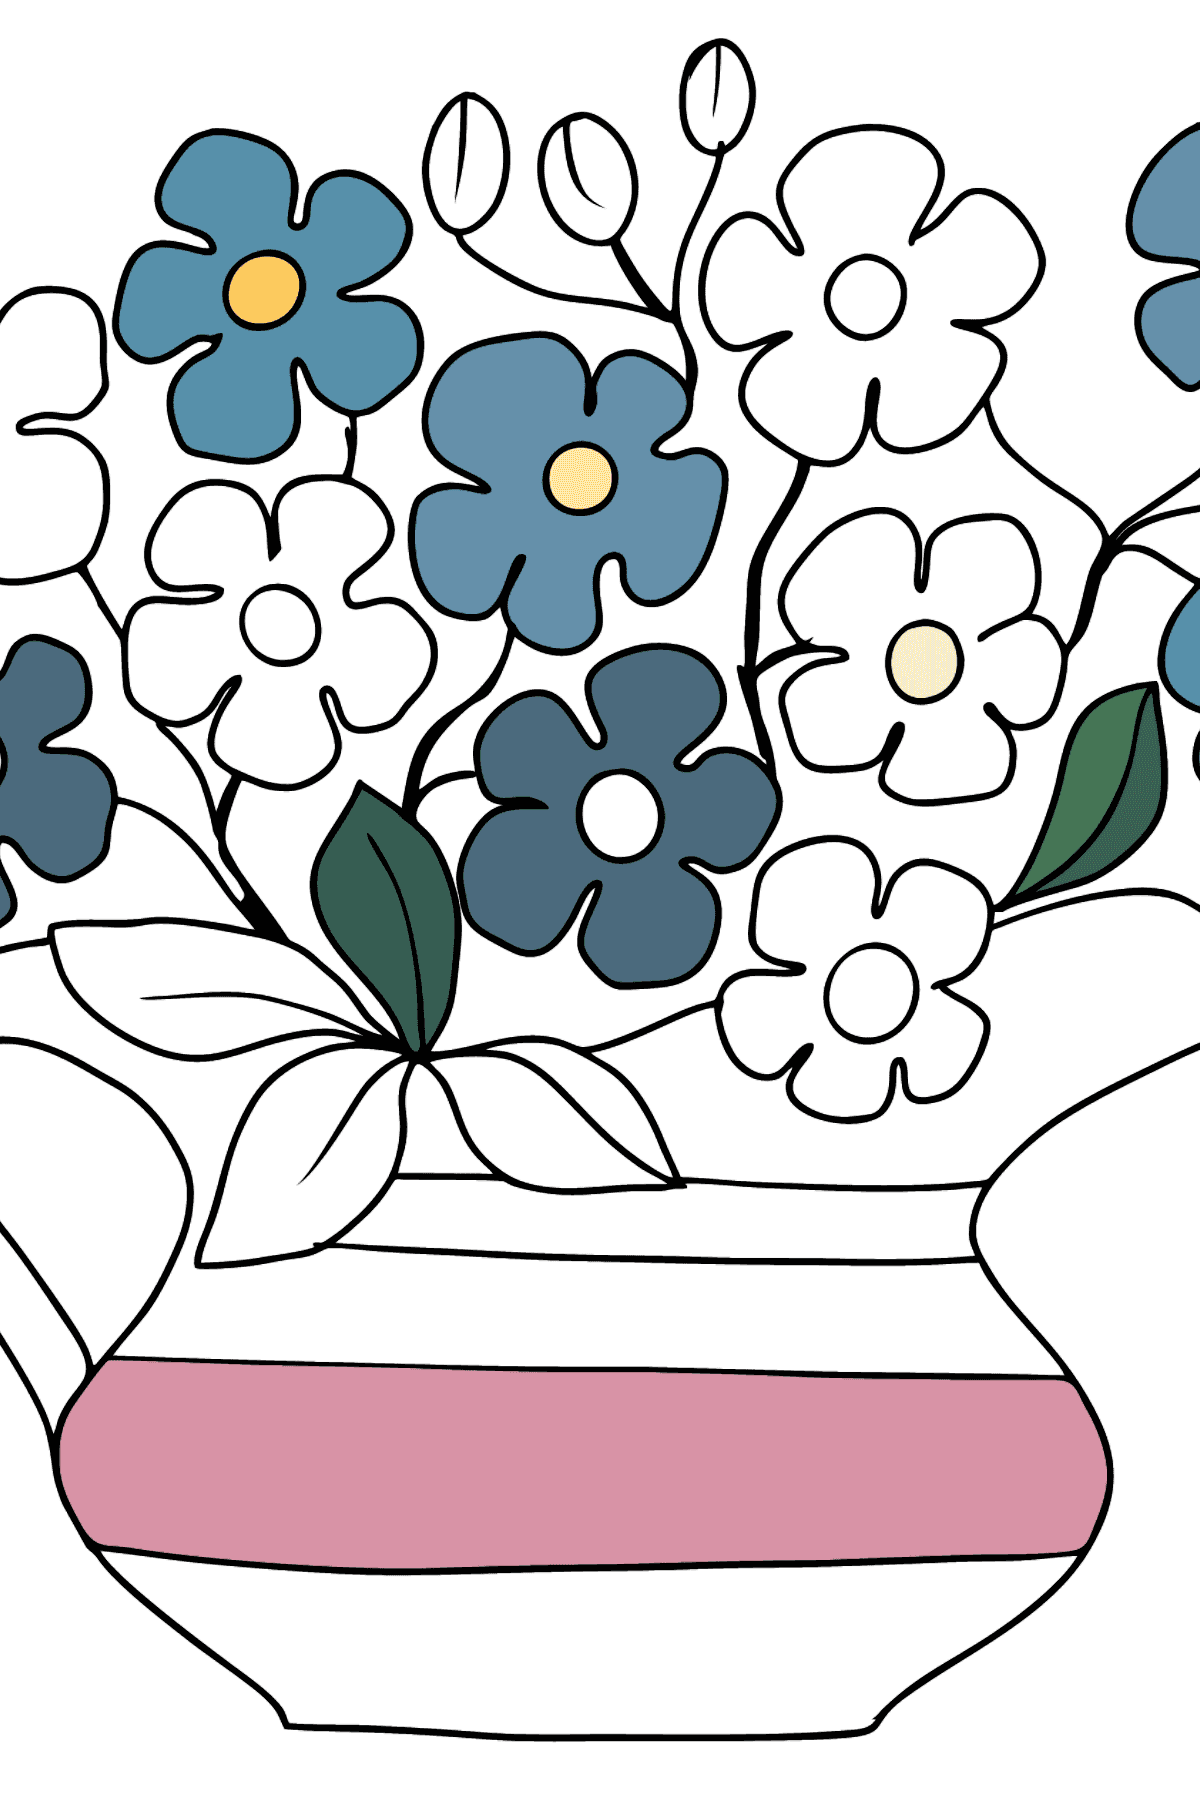 Flower Coloring Page - Forget me nots - Coloring Pages for Kids